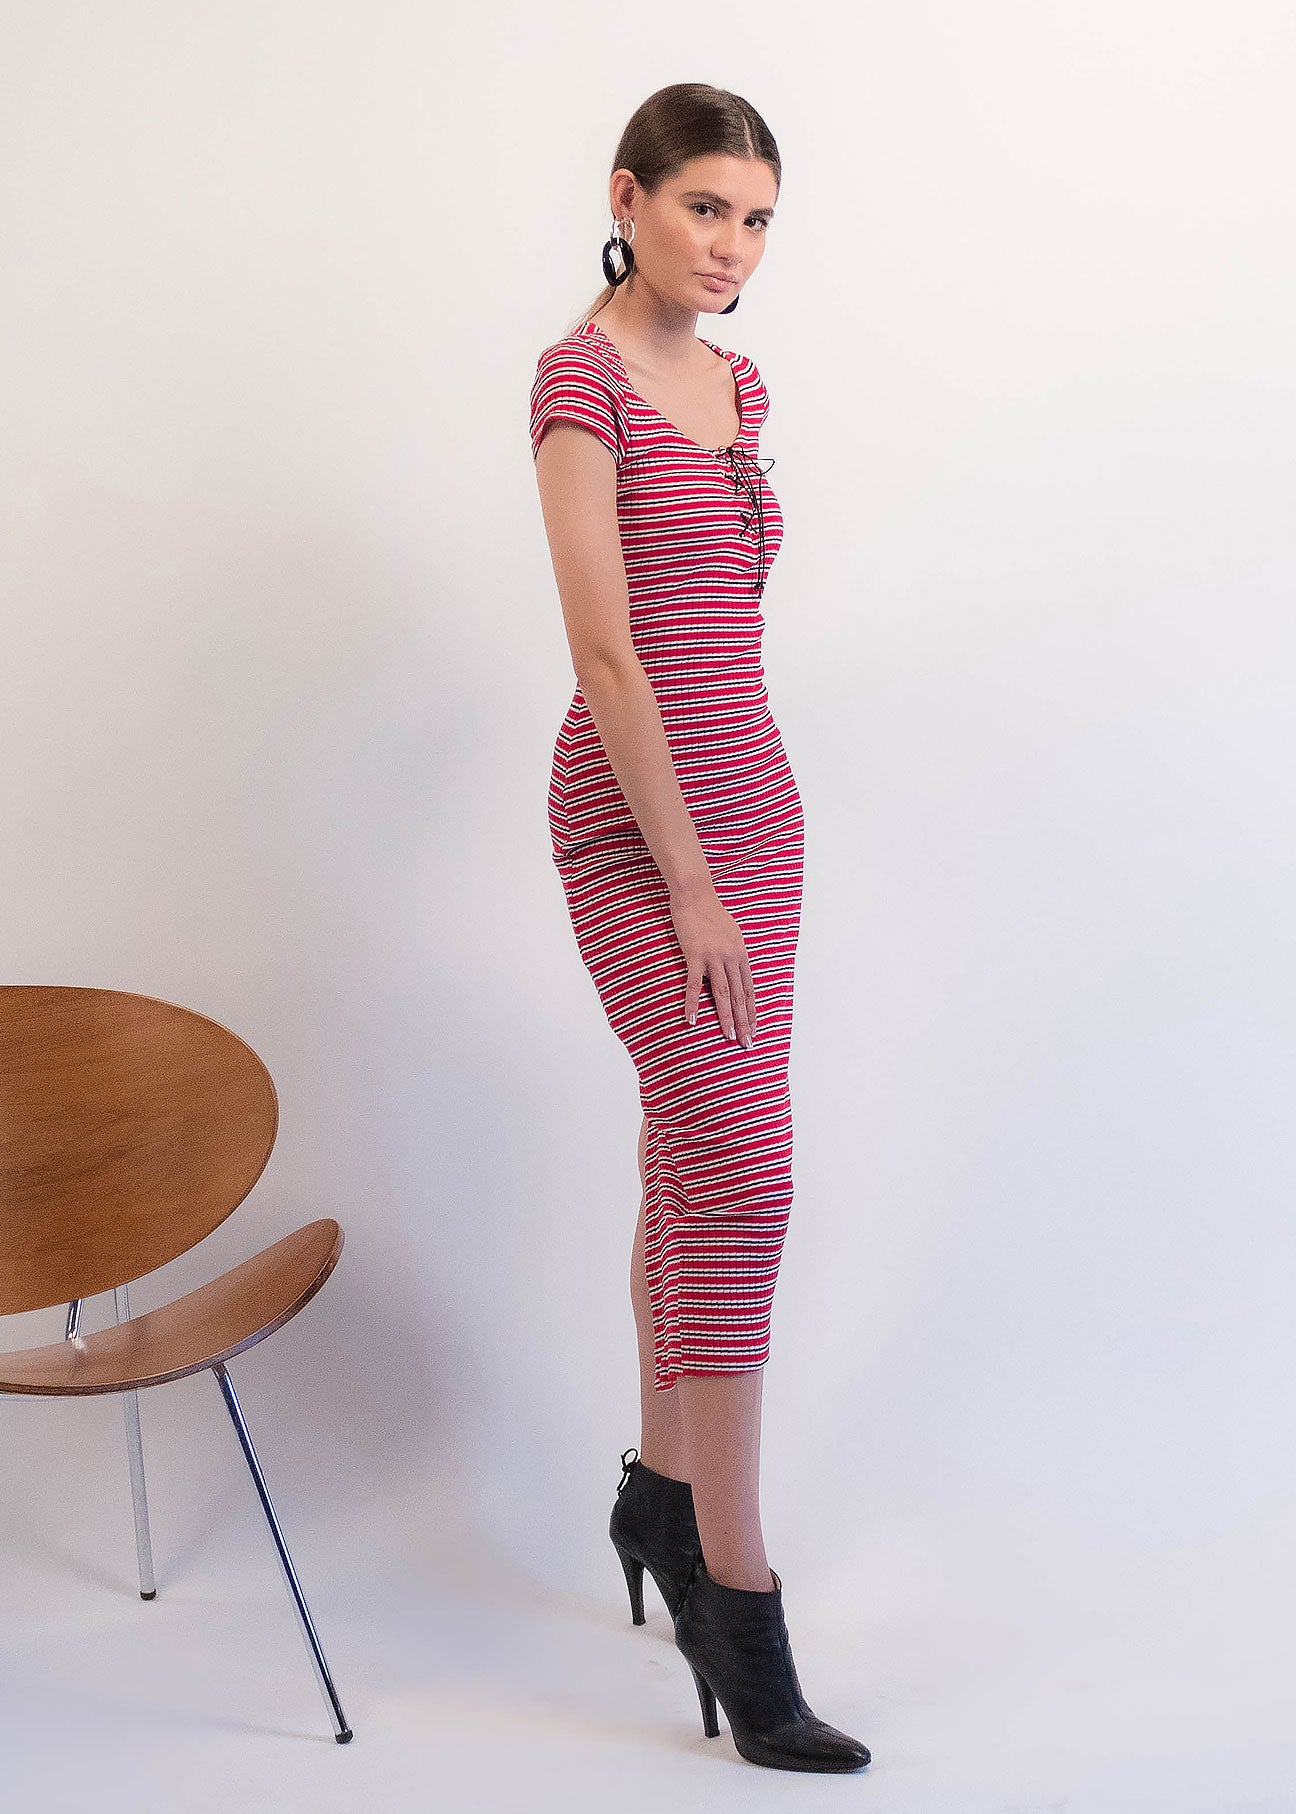 90s Ribbed Striped Dress